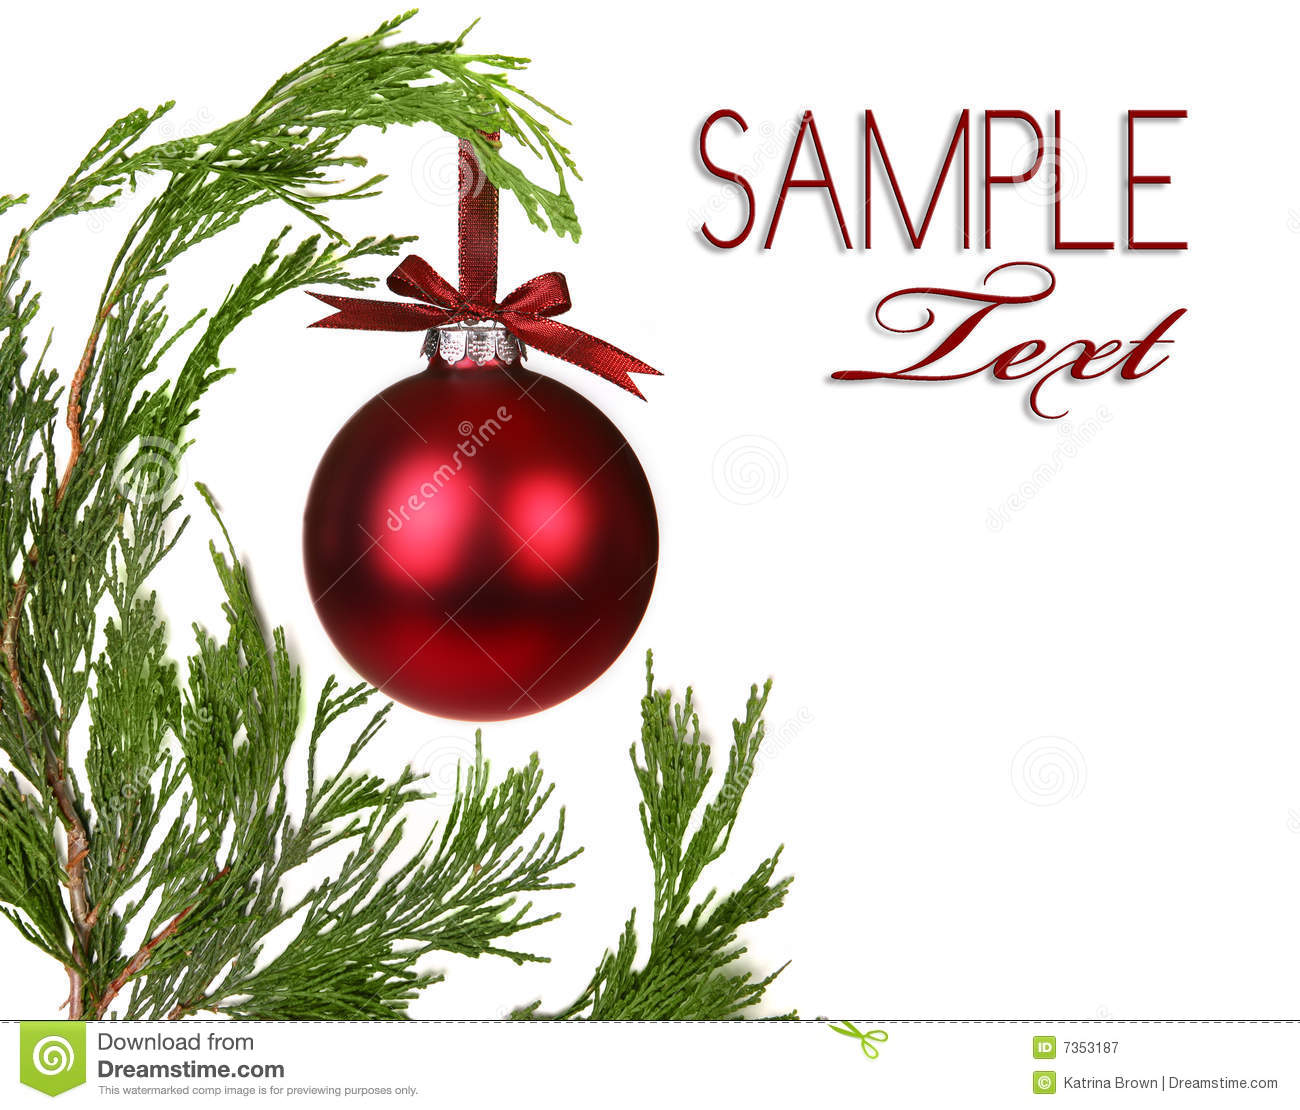 Evergreen Christmas.Evergreen Christmas Tree Branches With One Ornamen Stock